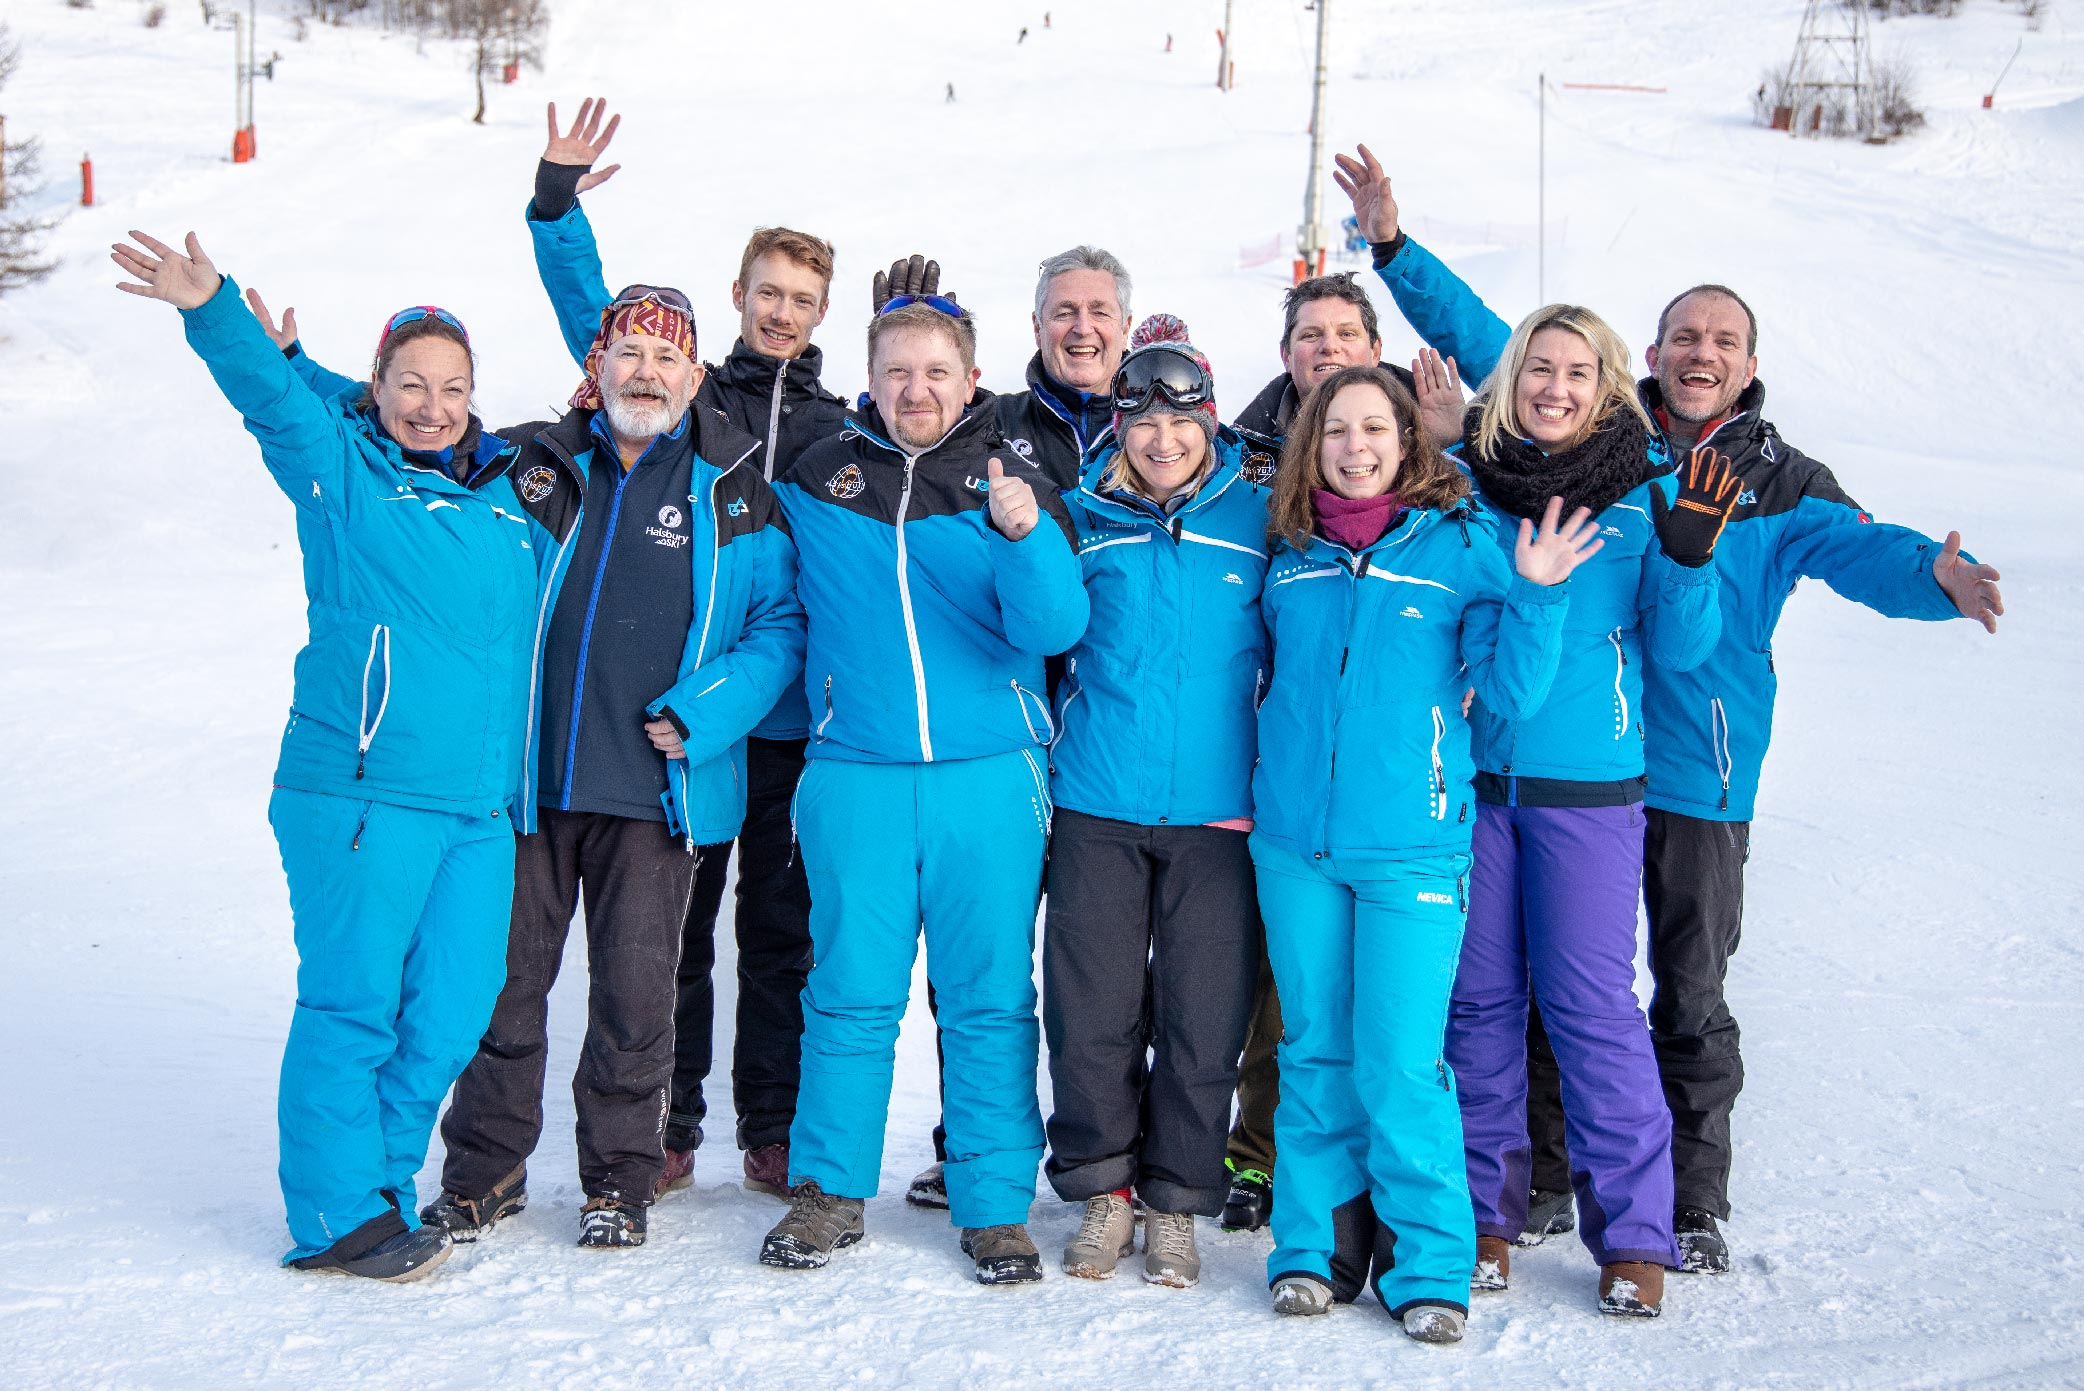 Who are Halsbury Ski-03